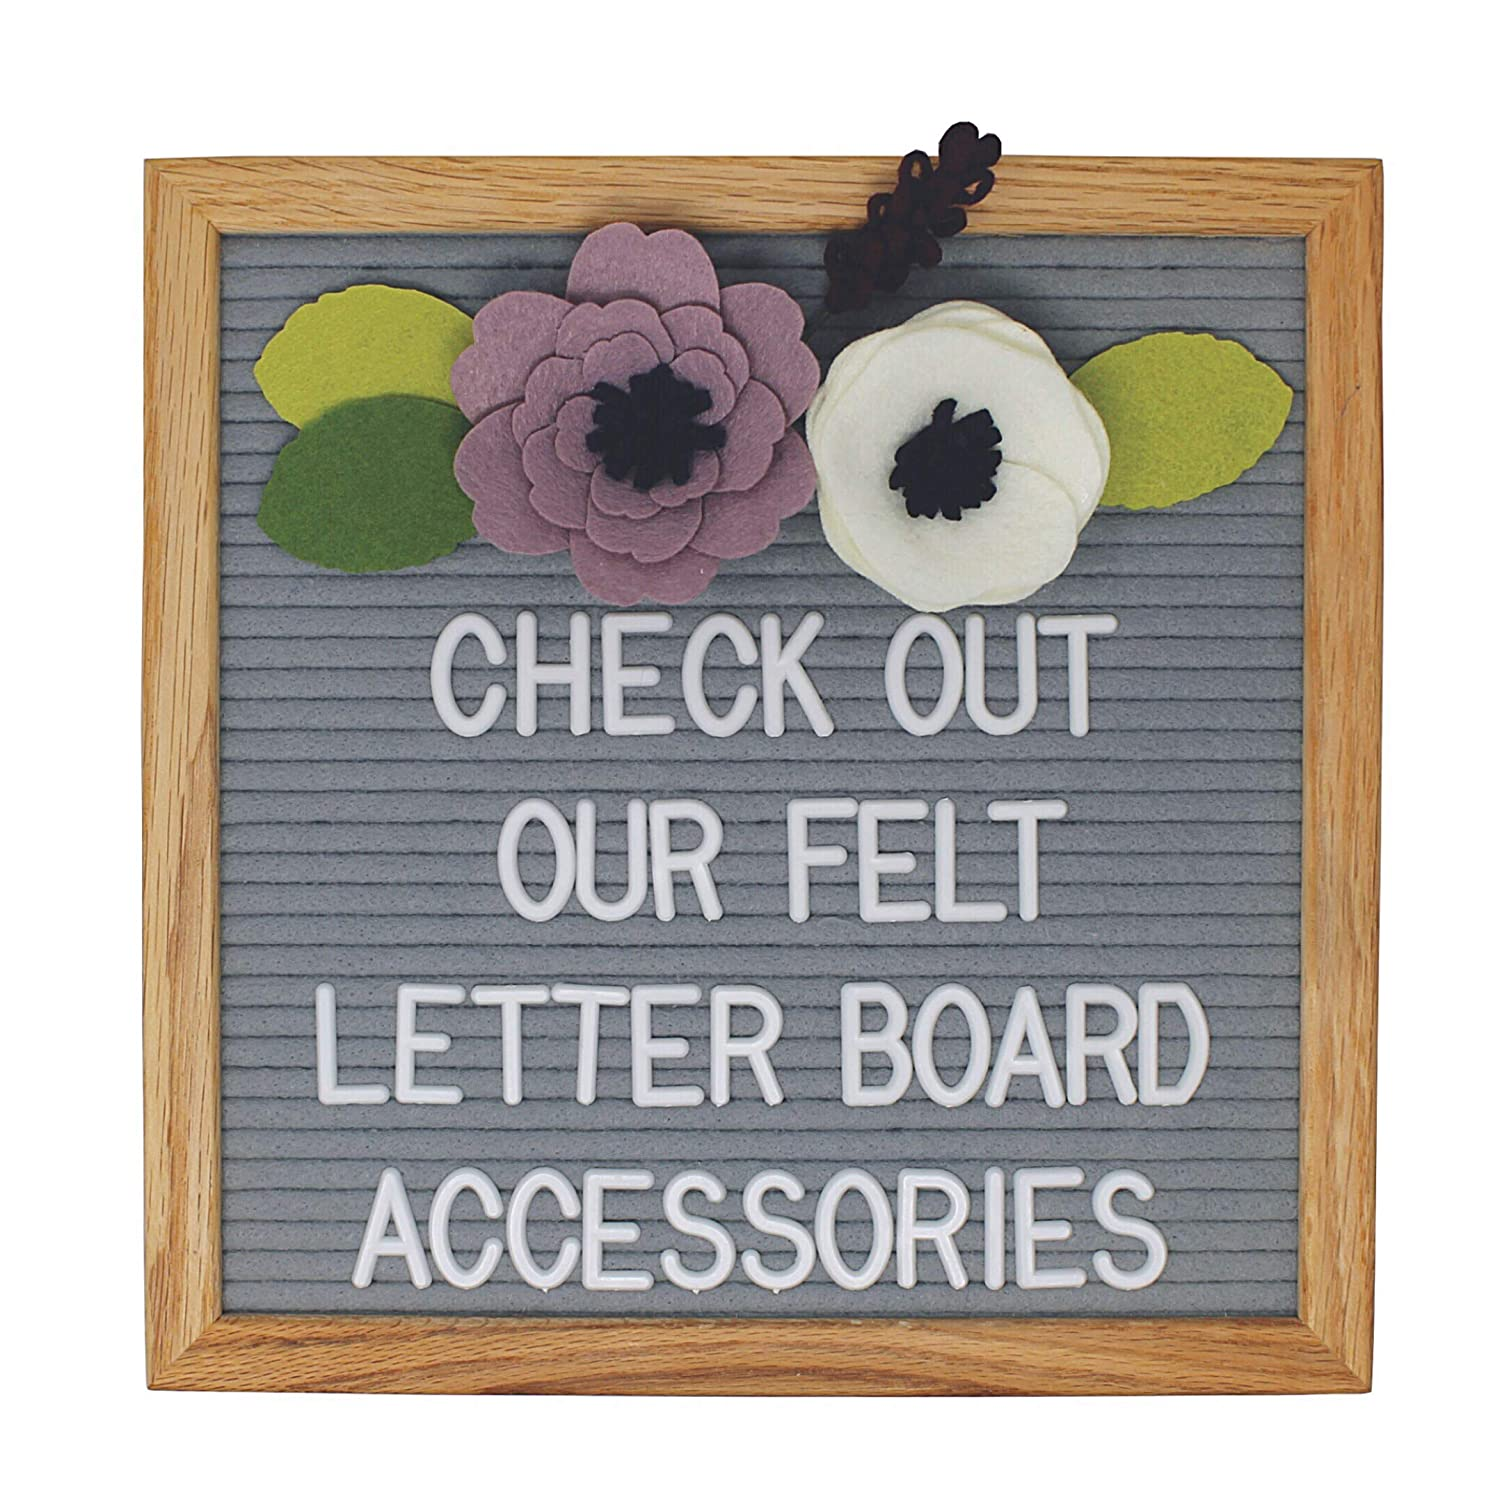 ba409c95e Amazon.com : Felt Letter Board Accessories (The Girly) - Letter Board Flower  Decorations Perfect for Baby Photo Props and Party Decor Works with All ...